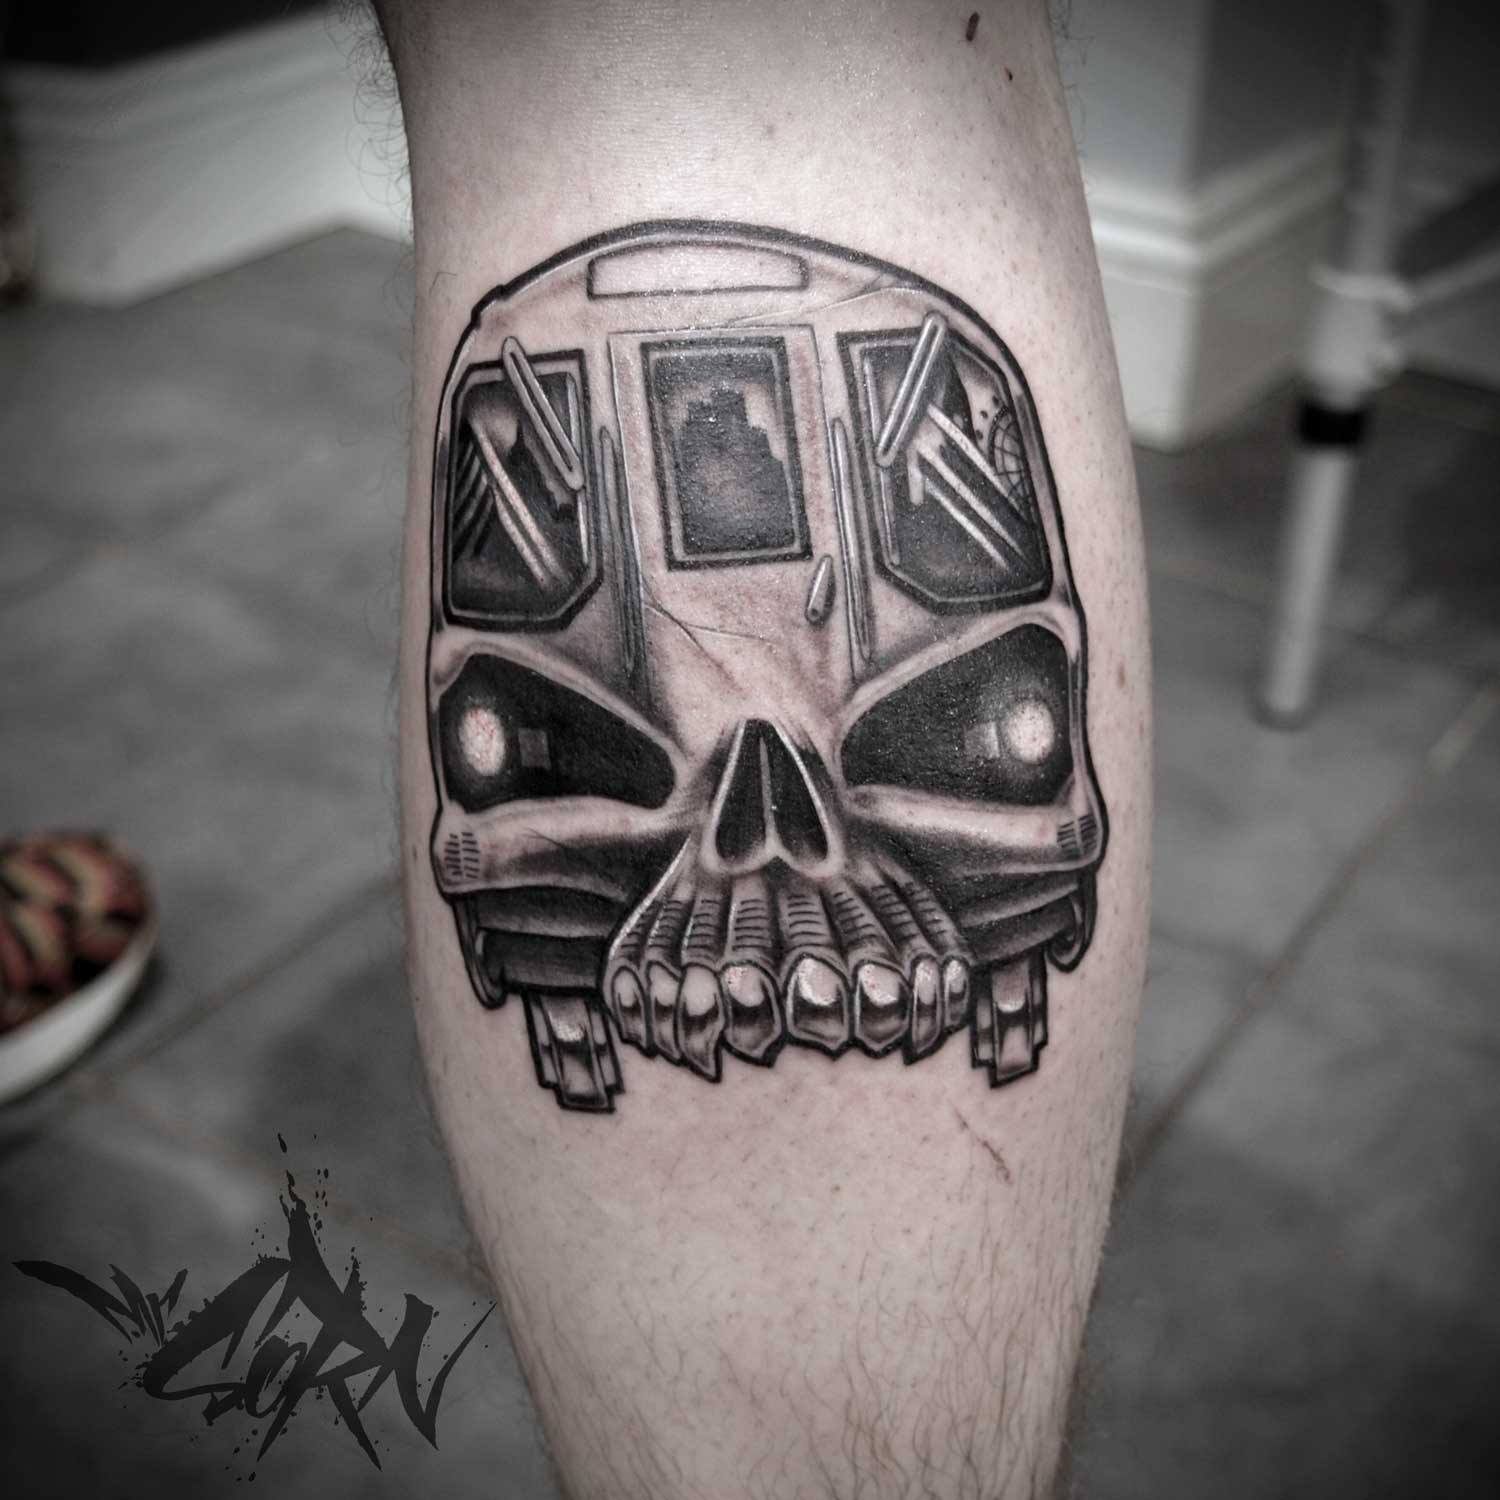 sorn-smb-tattoo-newschool-skull-tube-london-underground.jpg